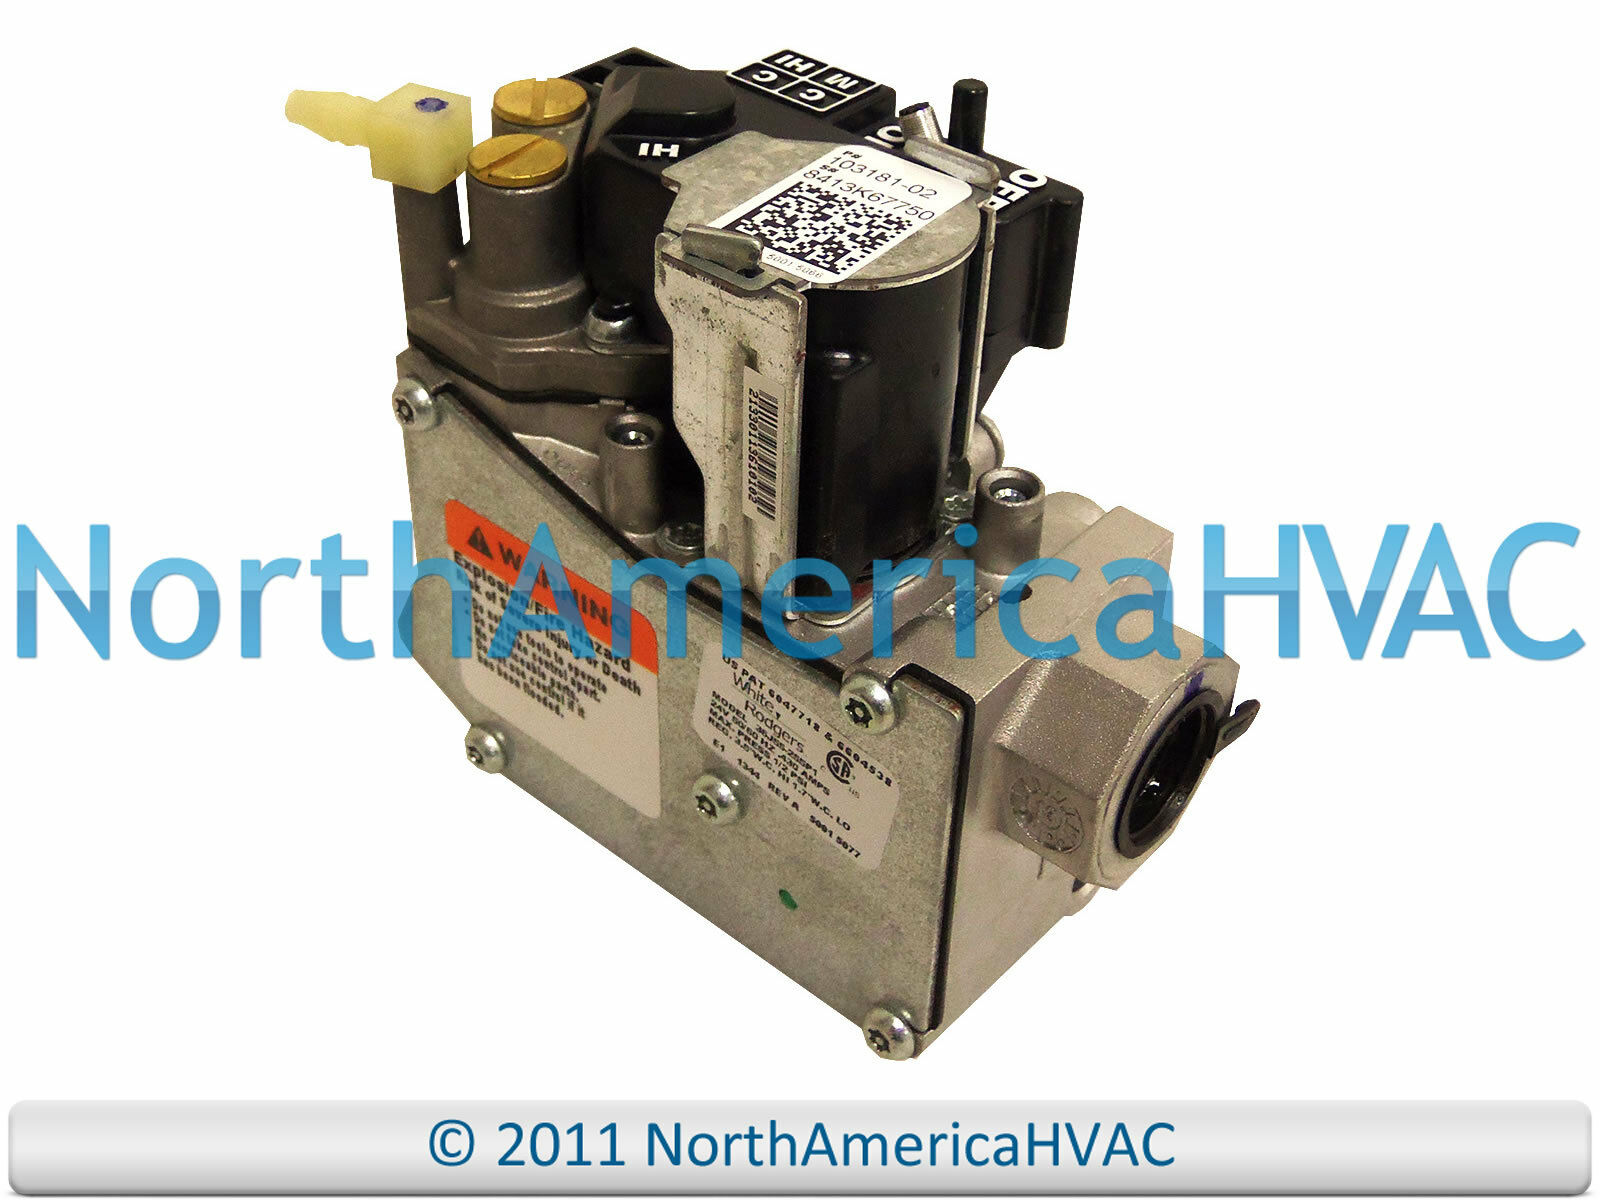 Lennox Furnace Gas Valve further Bajaj Water Heater furthermore Gas Furnace Wiring Diagram likewise Lennox Pulse Furnace Control Board in addition Whirlpool Washing Machine Wiring Diagram. on armstrong furnace replacement parts